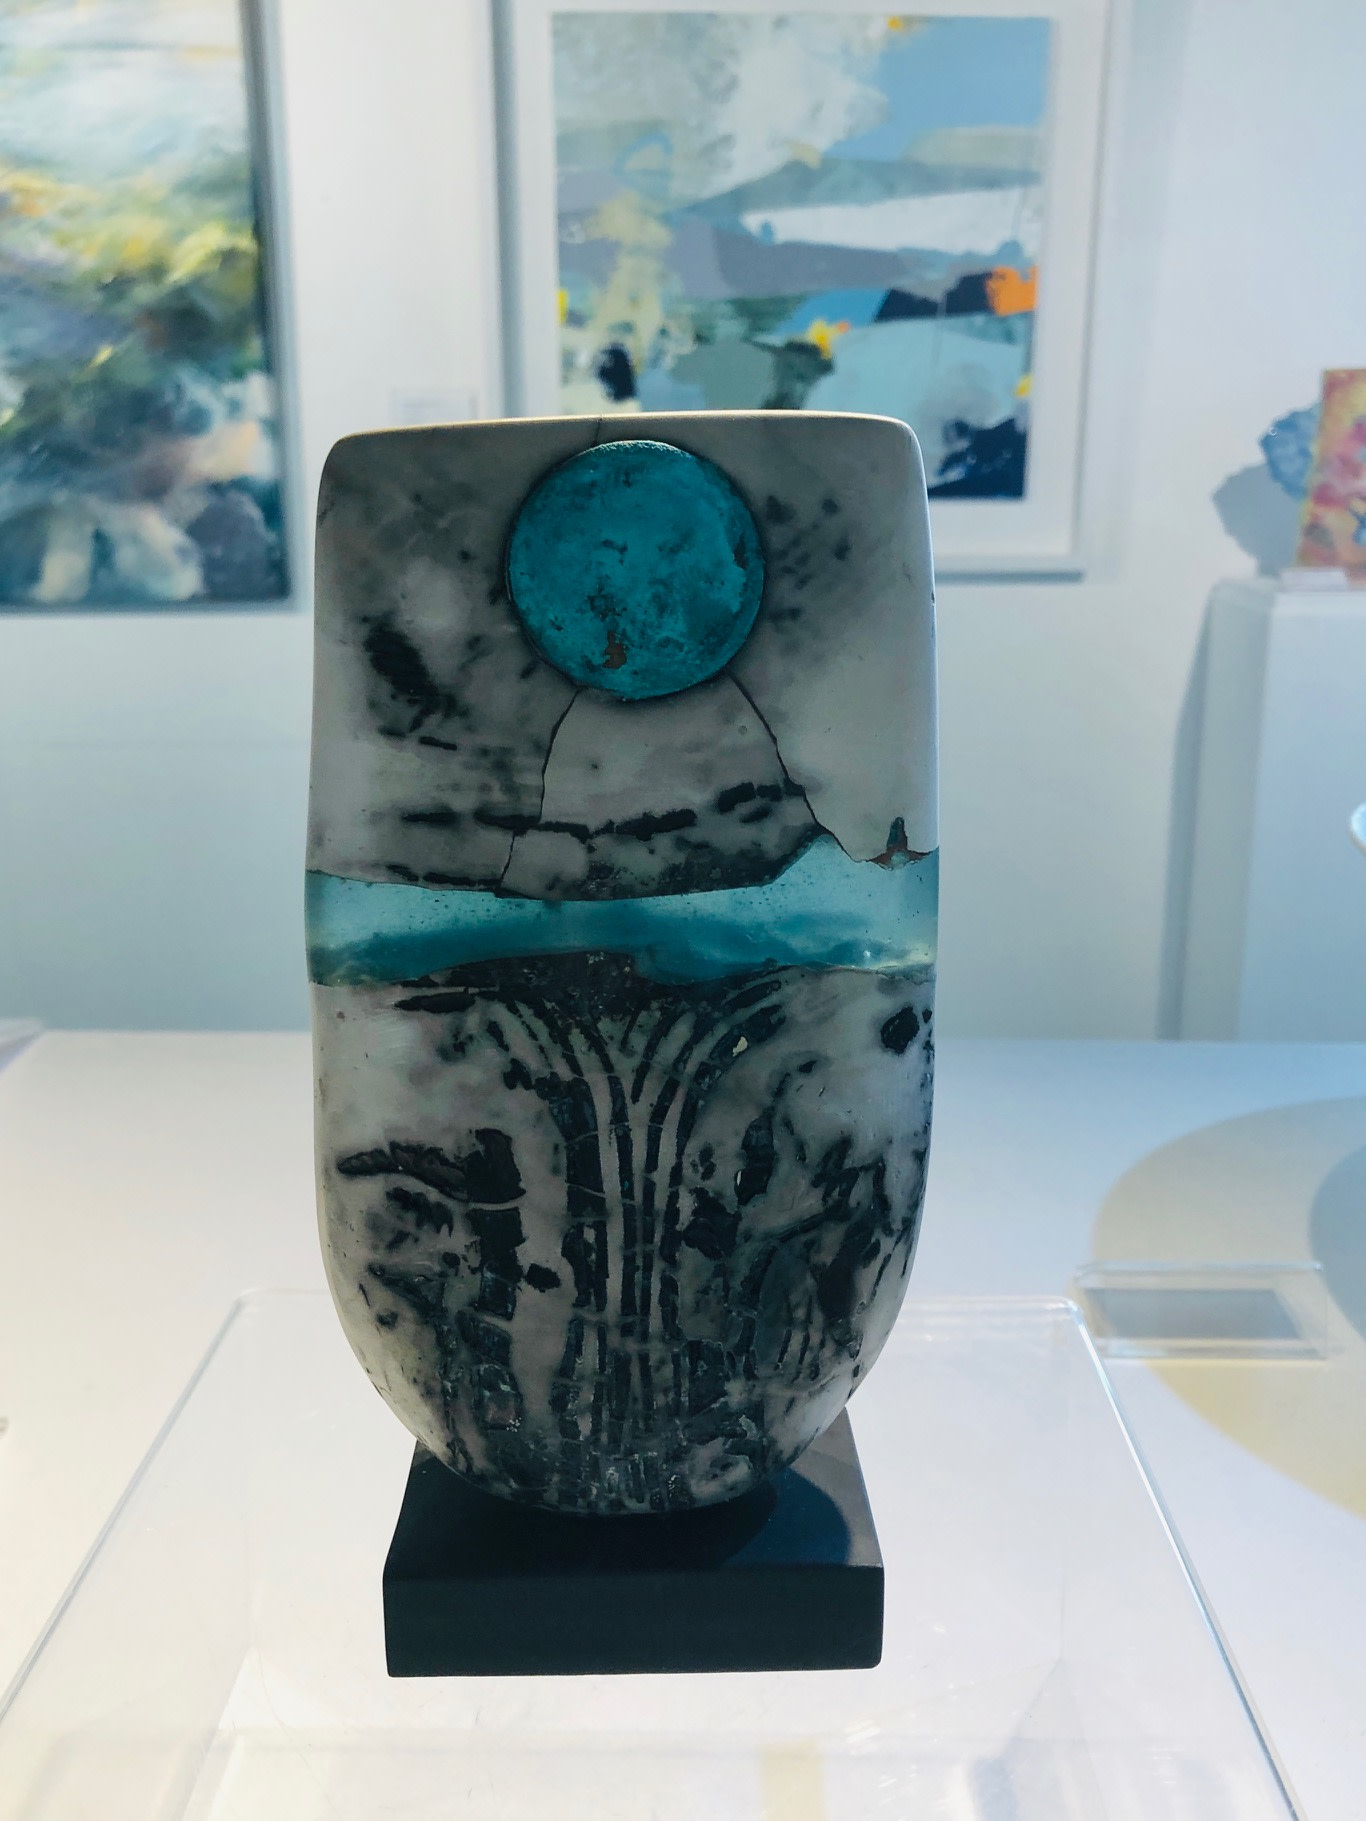 "<span class=""link fancybox-details-link""><a href=""/artists/40-peter-hayes/works/6882-peter-hayes-raku-bow-blue-wave-and-disc-2020/"">View Detail Page</a></span><div class=""artist""><strong>Peter Hayes</strong></div> b. 1946 <div class=""title""><em>Raku Bow Blue wave and disc</em>, 2020</div> <div class=""dimensions"">h. 21 cm x w. 11 cm</div><div class=""copyright_line"">Ownart: £47 x 10 Months, 0% APR </div>"